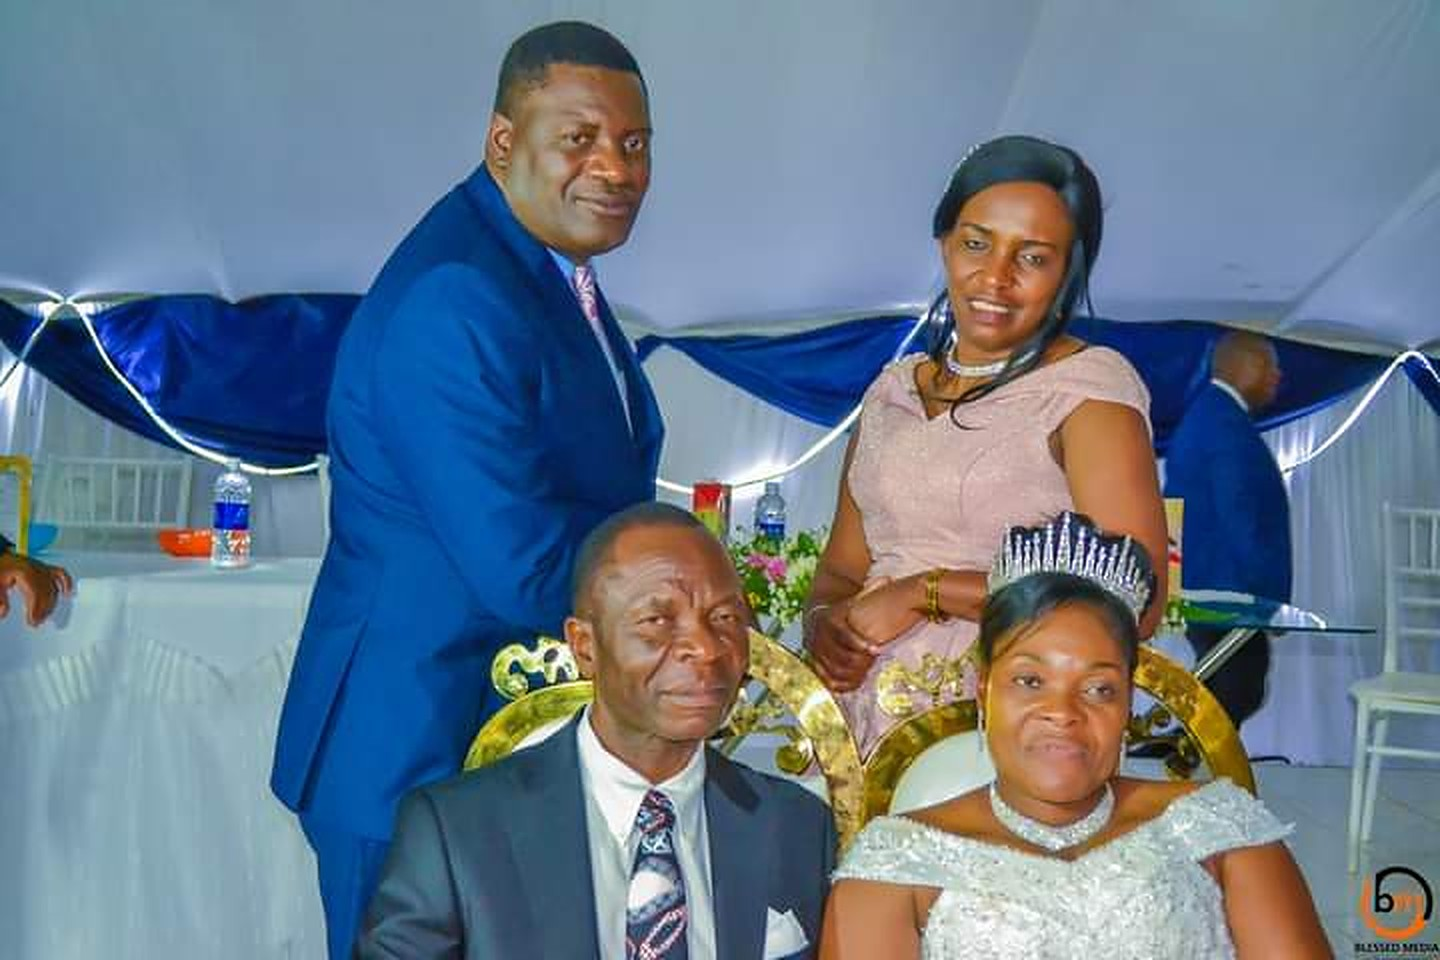 AFM Divided After Pastor Marries His Secretary Four Months After His Wife's Death!